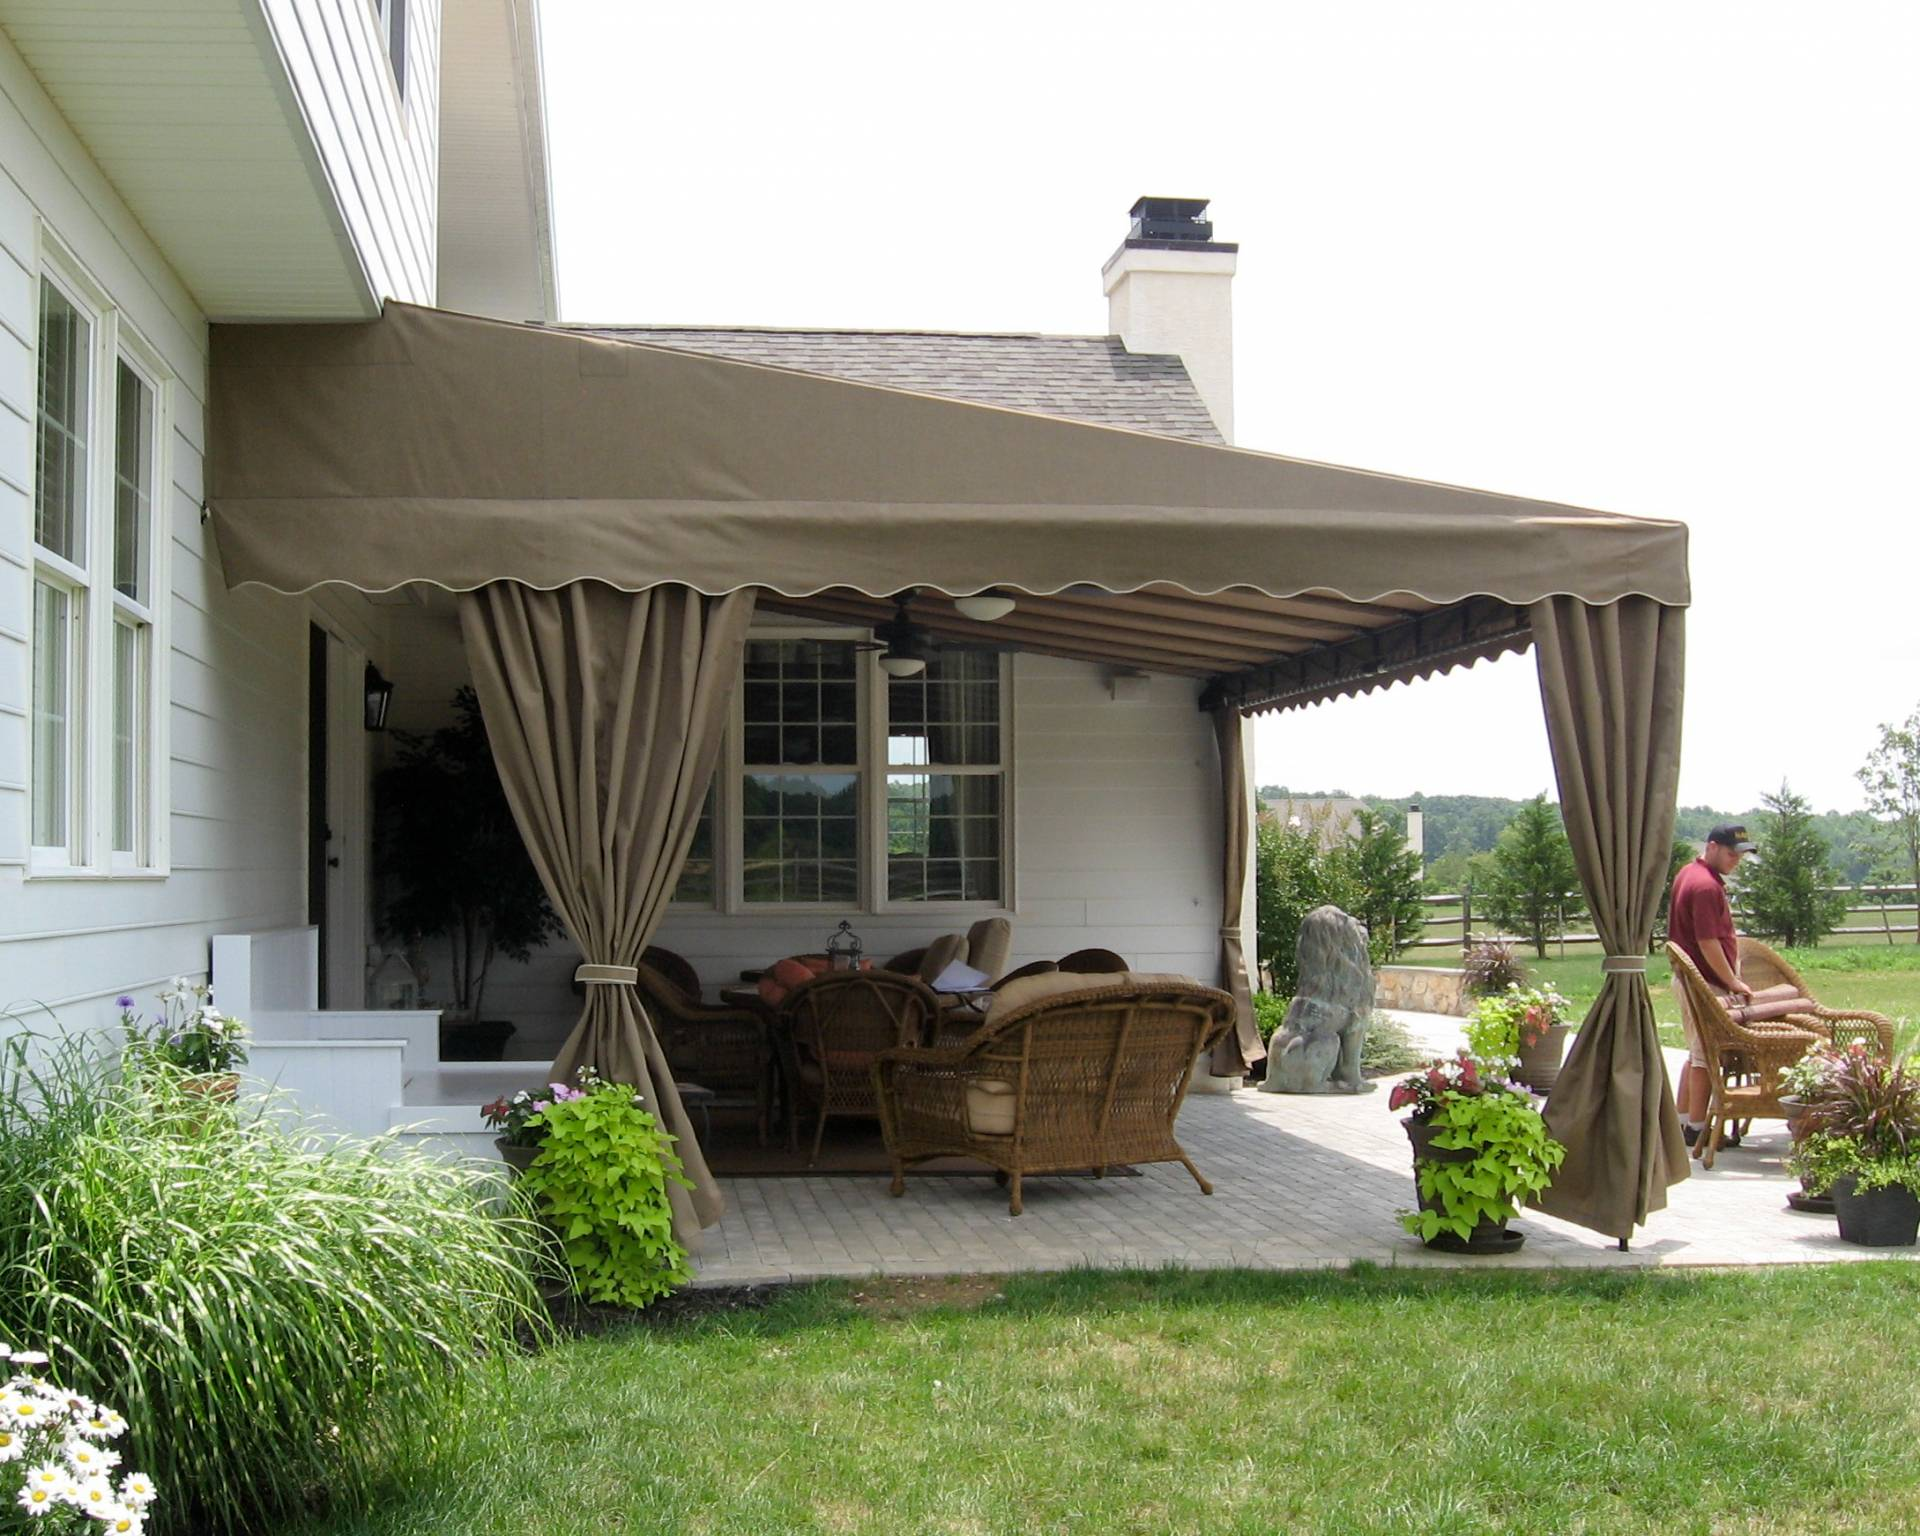 Residential deck or patio awning